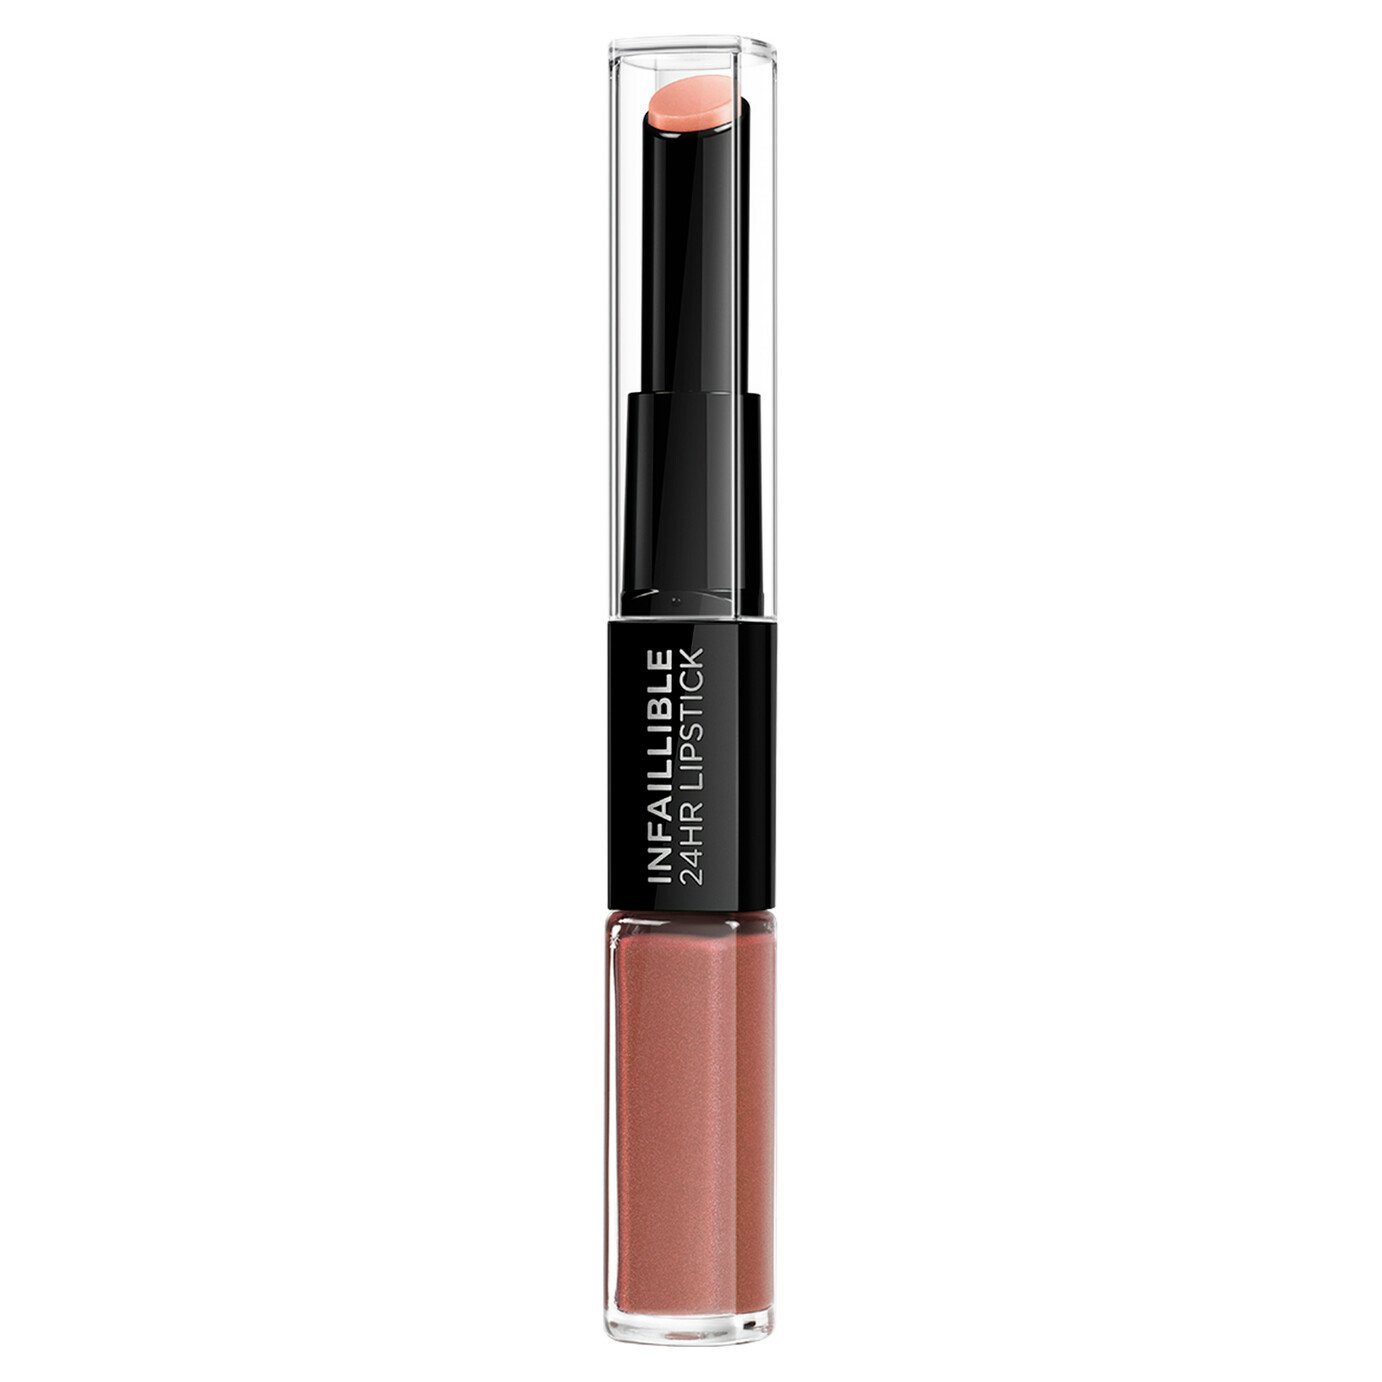 L'Oreal Paris Infallible 24HR Lipstick - Ever Nude 114